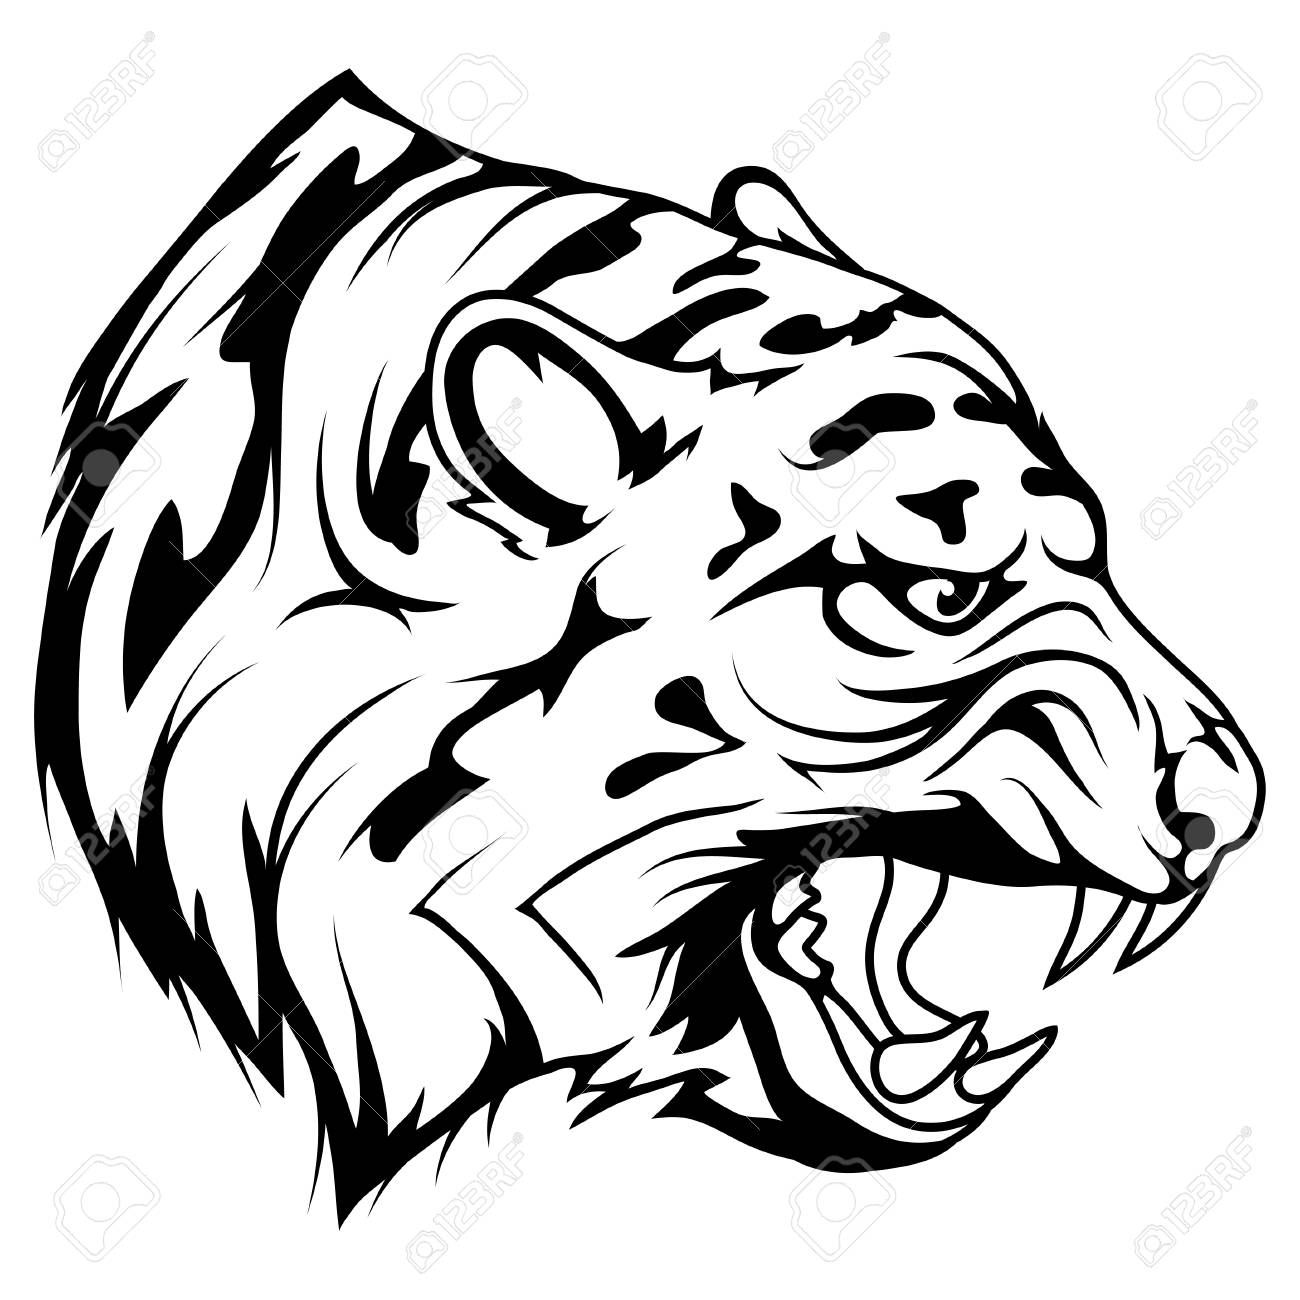 Tiger Head Vector Drawing Tiger Face Drawing Sketch Tiger Head Royalty Free Cliparts Vectors And Stock Illustration Image 124802366